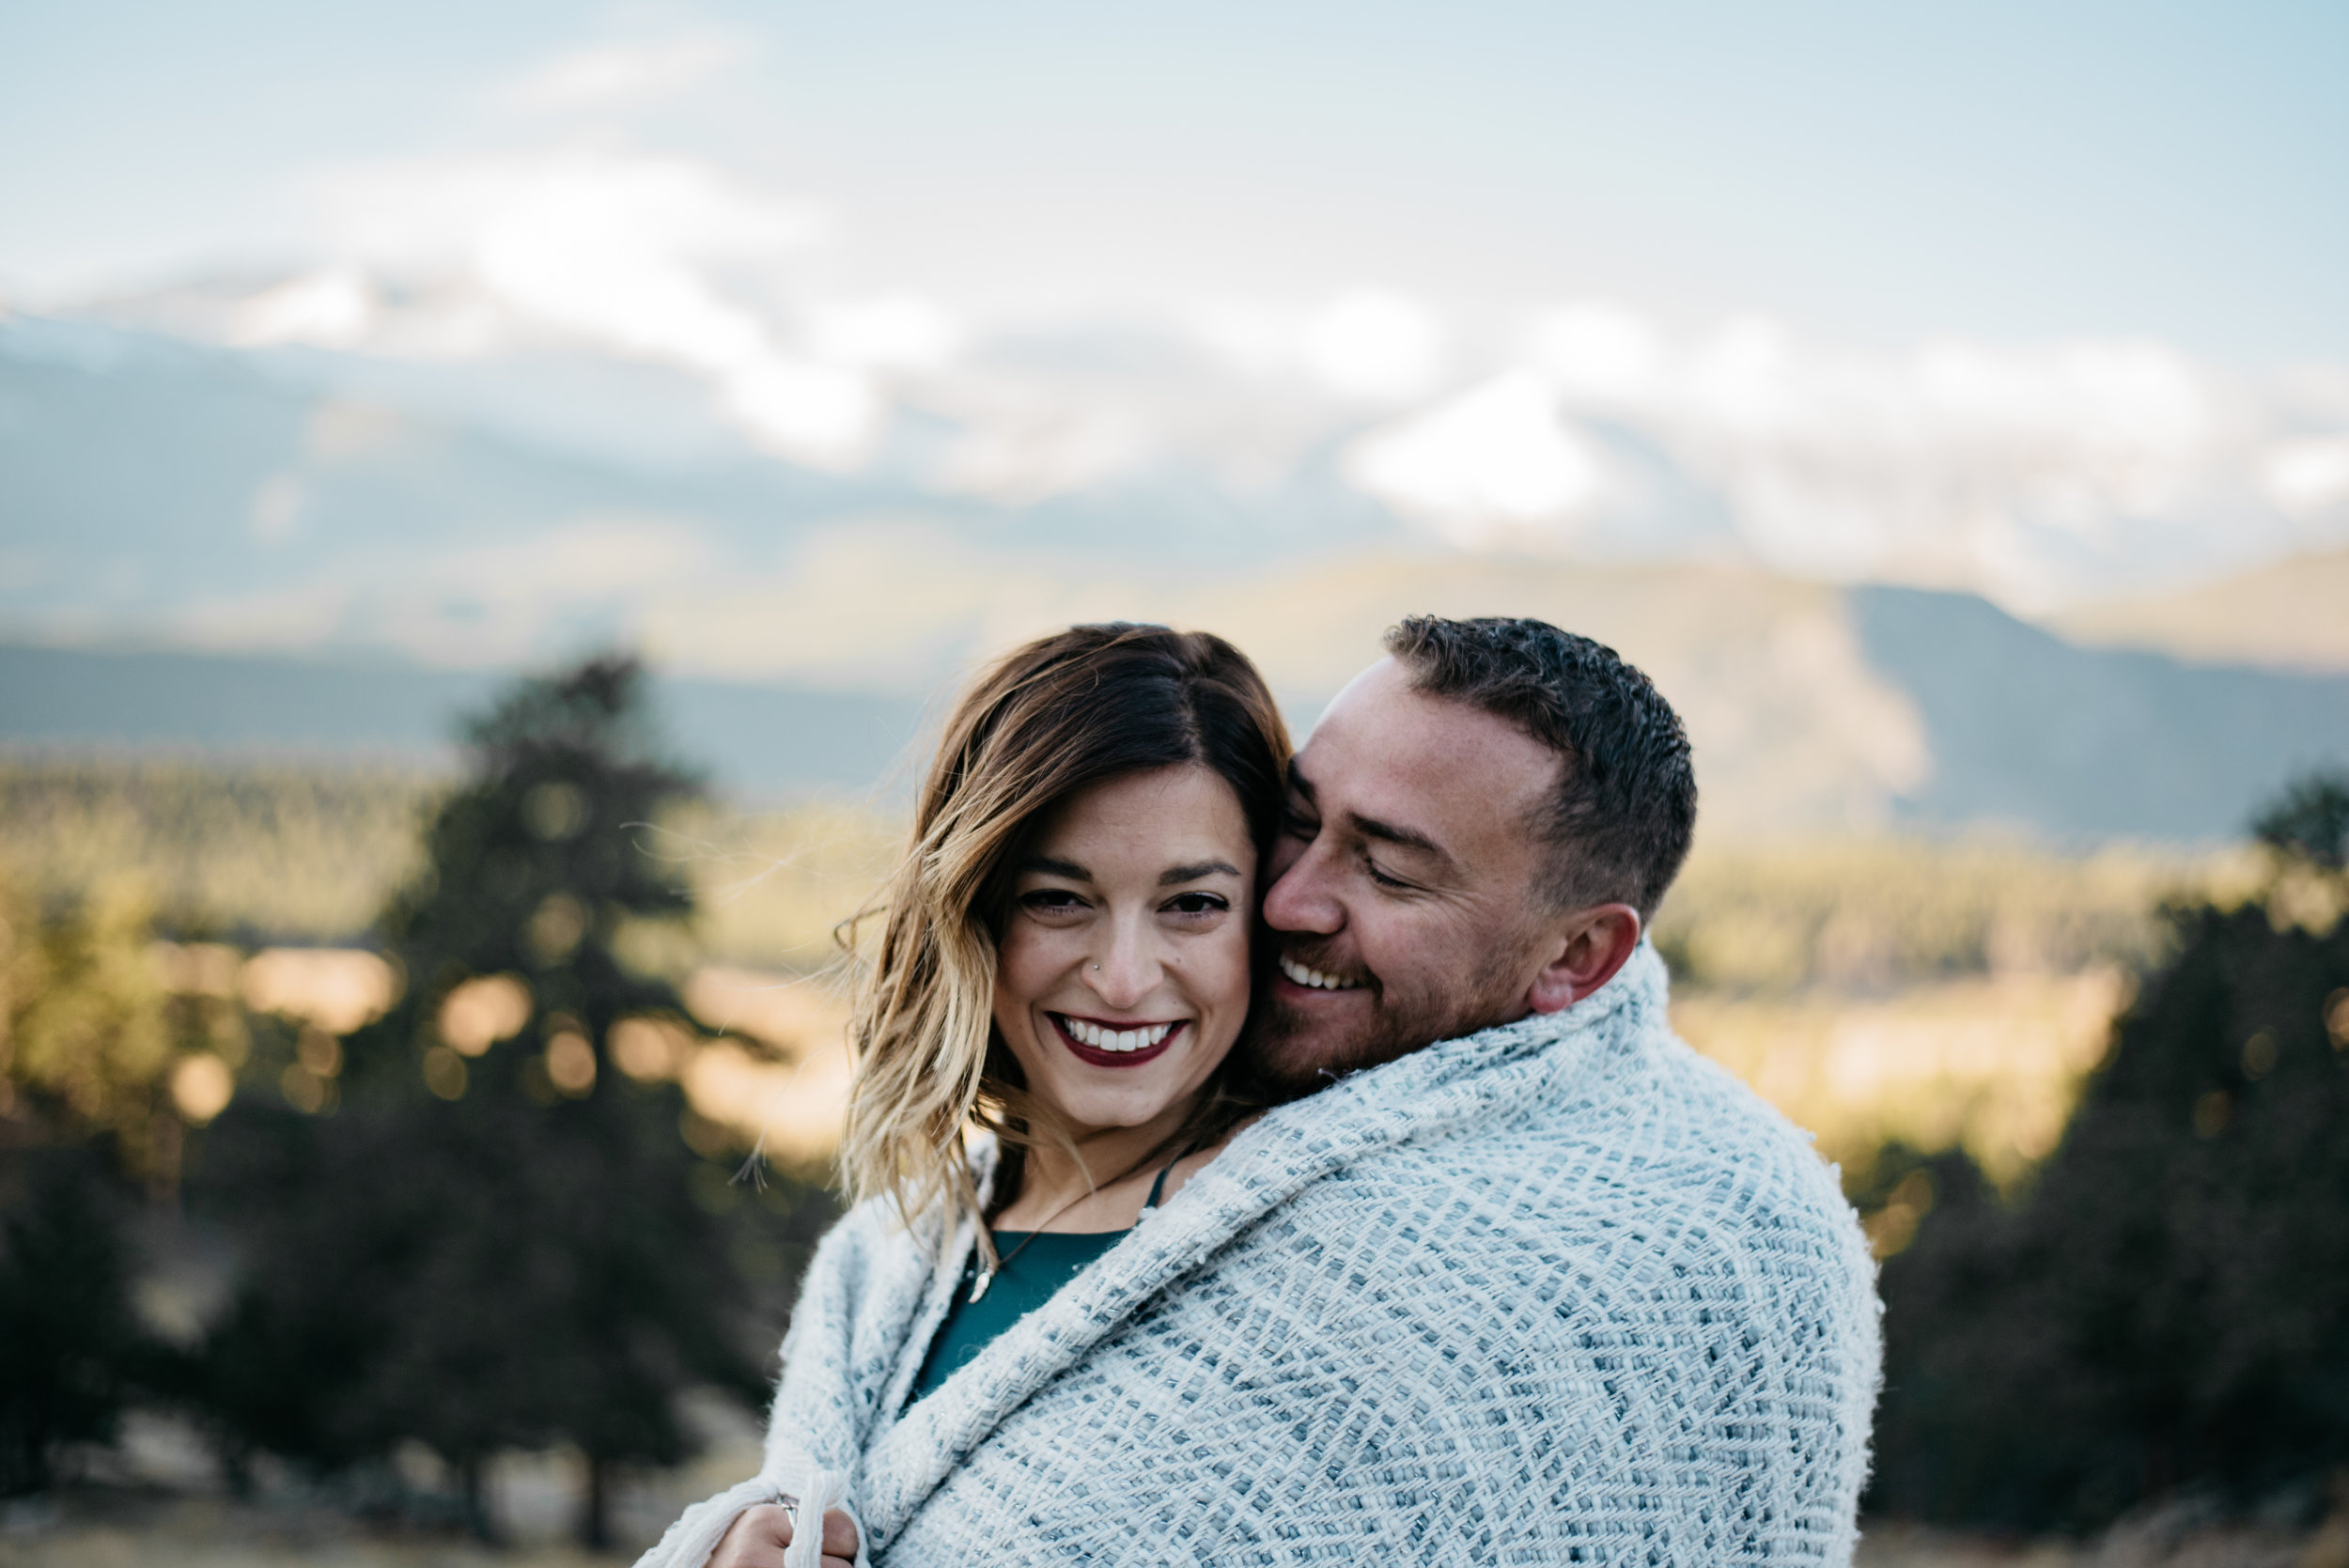 Boho Denver wedding photographer. Intimate wedding photographer.